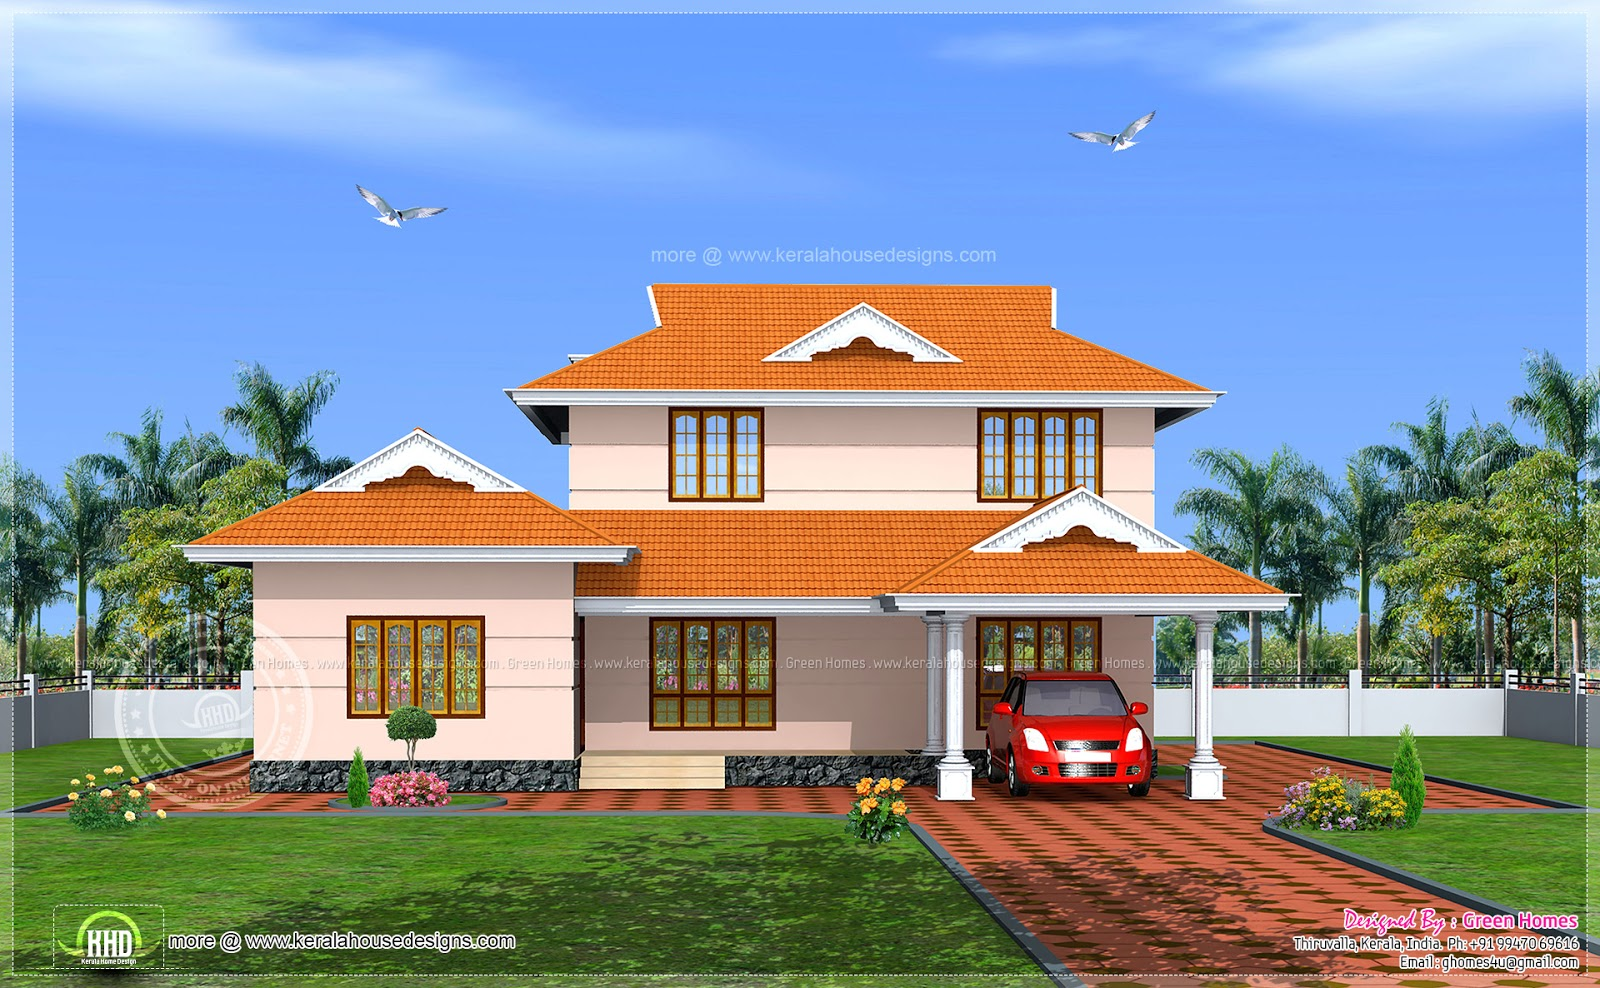 House plans and design house plans in kerala model with for Photos of model homes